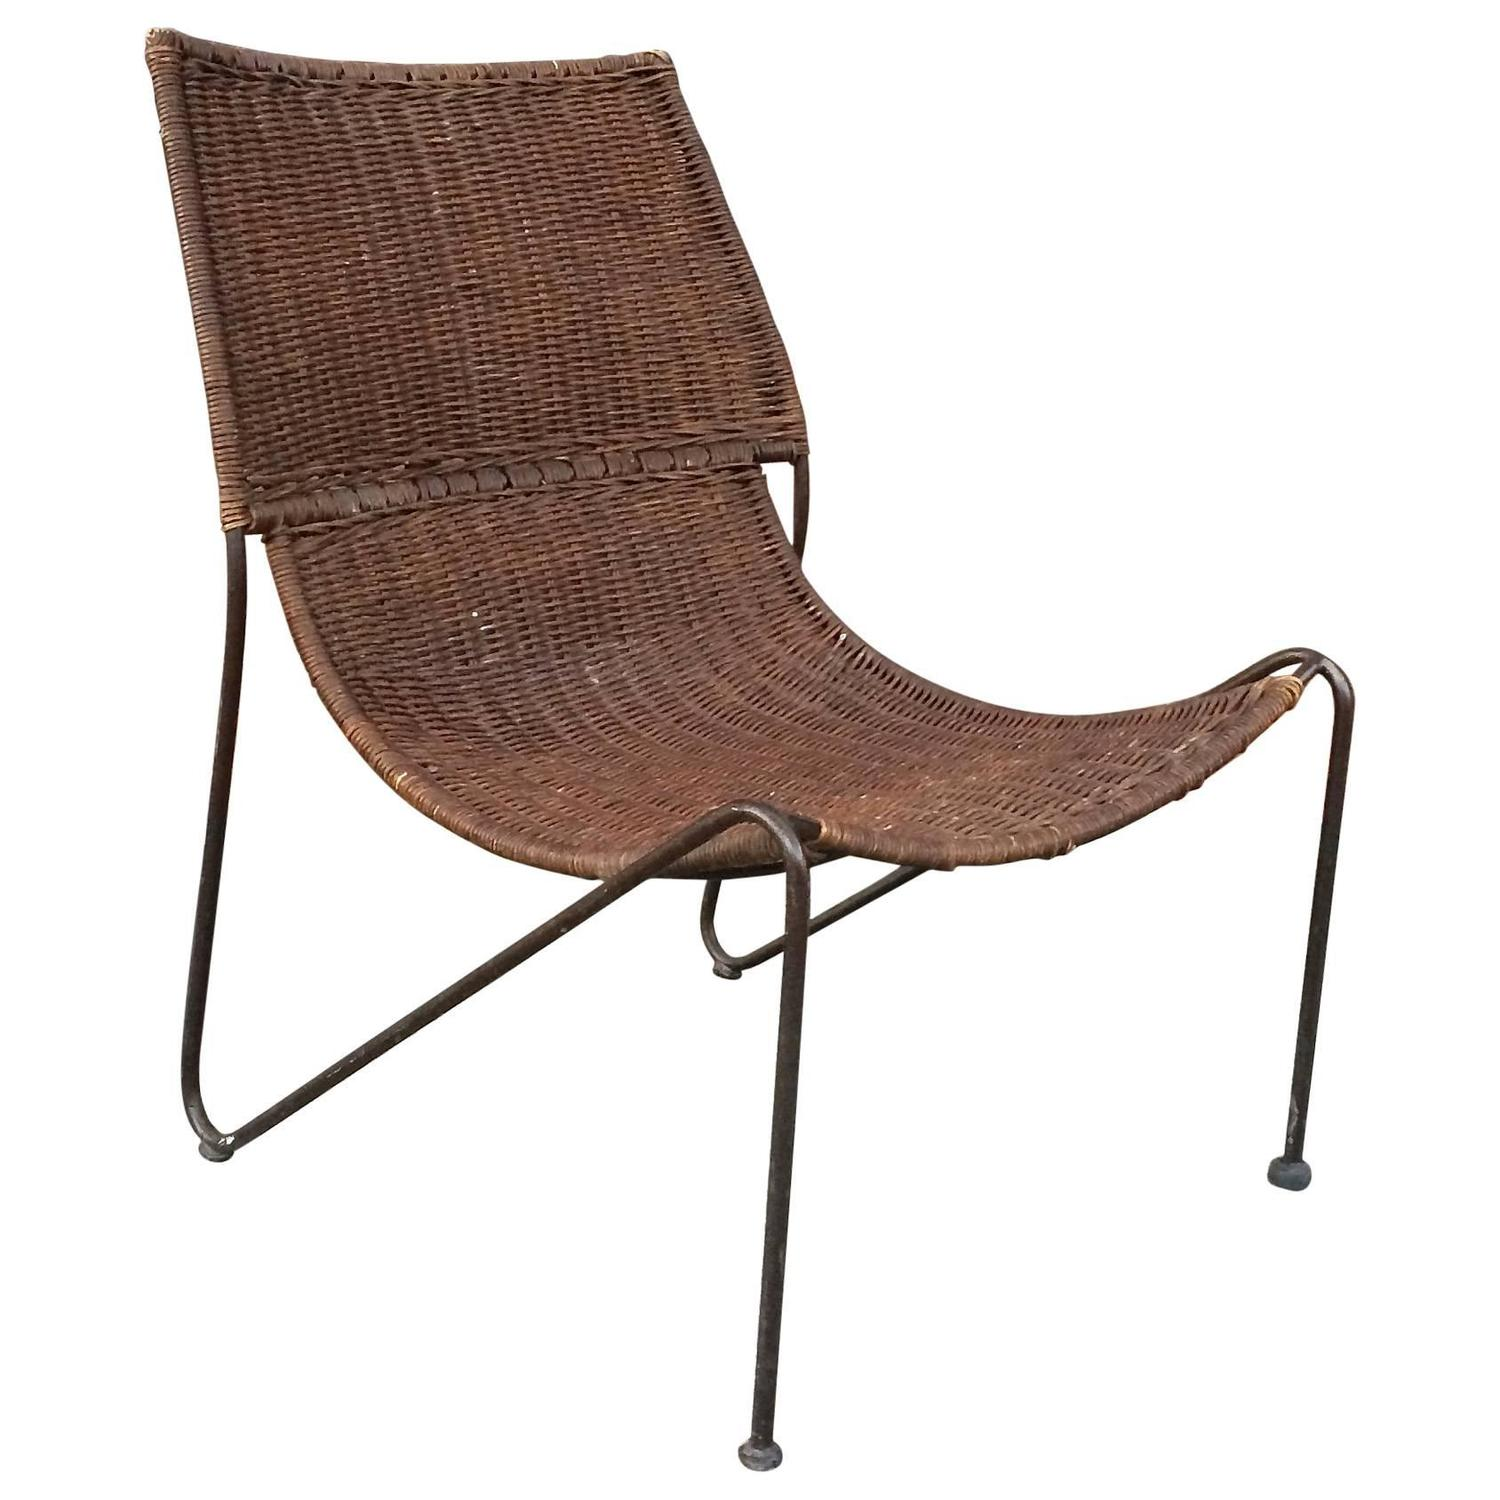 woven rattan and wrought iron slipper lounge chair for sale at 1stdibs. Black Bedroom Furniture Sets. Home Design Ideas